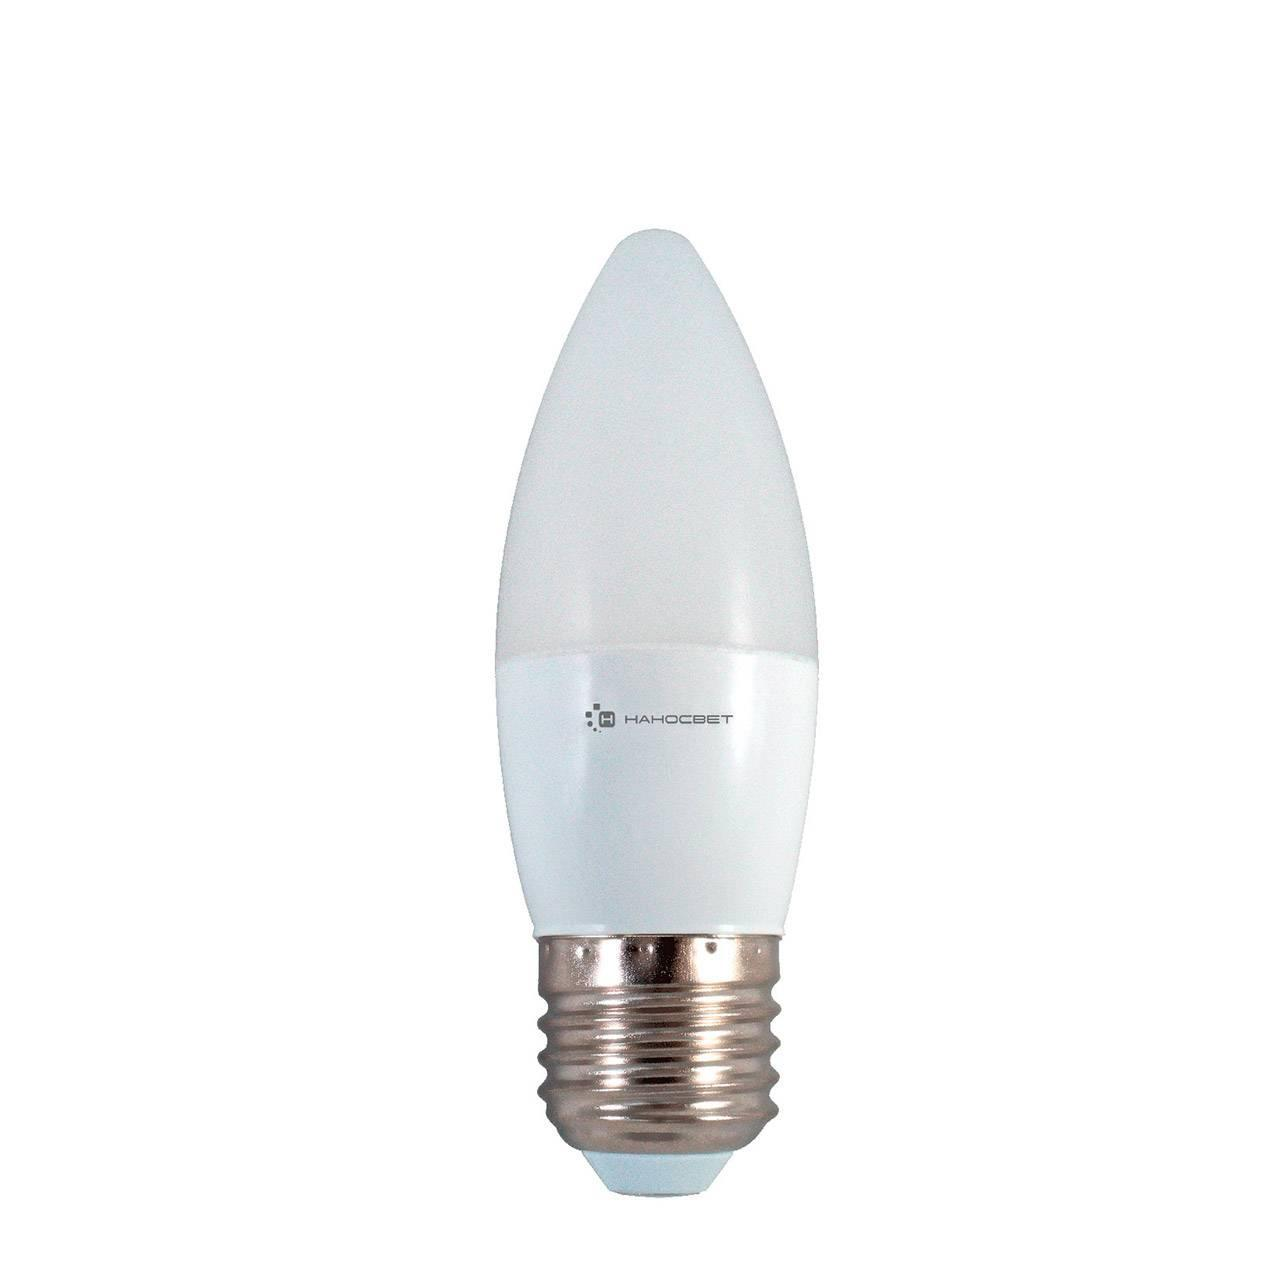 Лампа светодиодная E27 6W 2700K матовая LE-CD-6/E27/827 L252 e27 6w 6 led 540 lumen 6000k white light bulb 85 265v ac